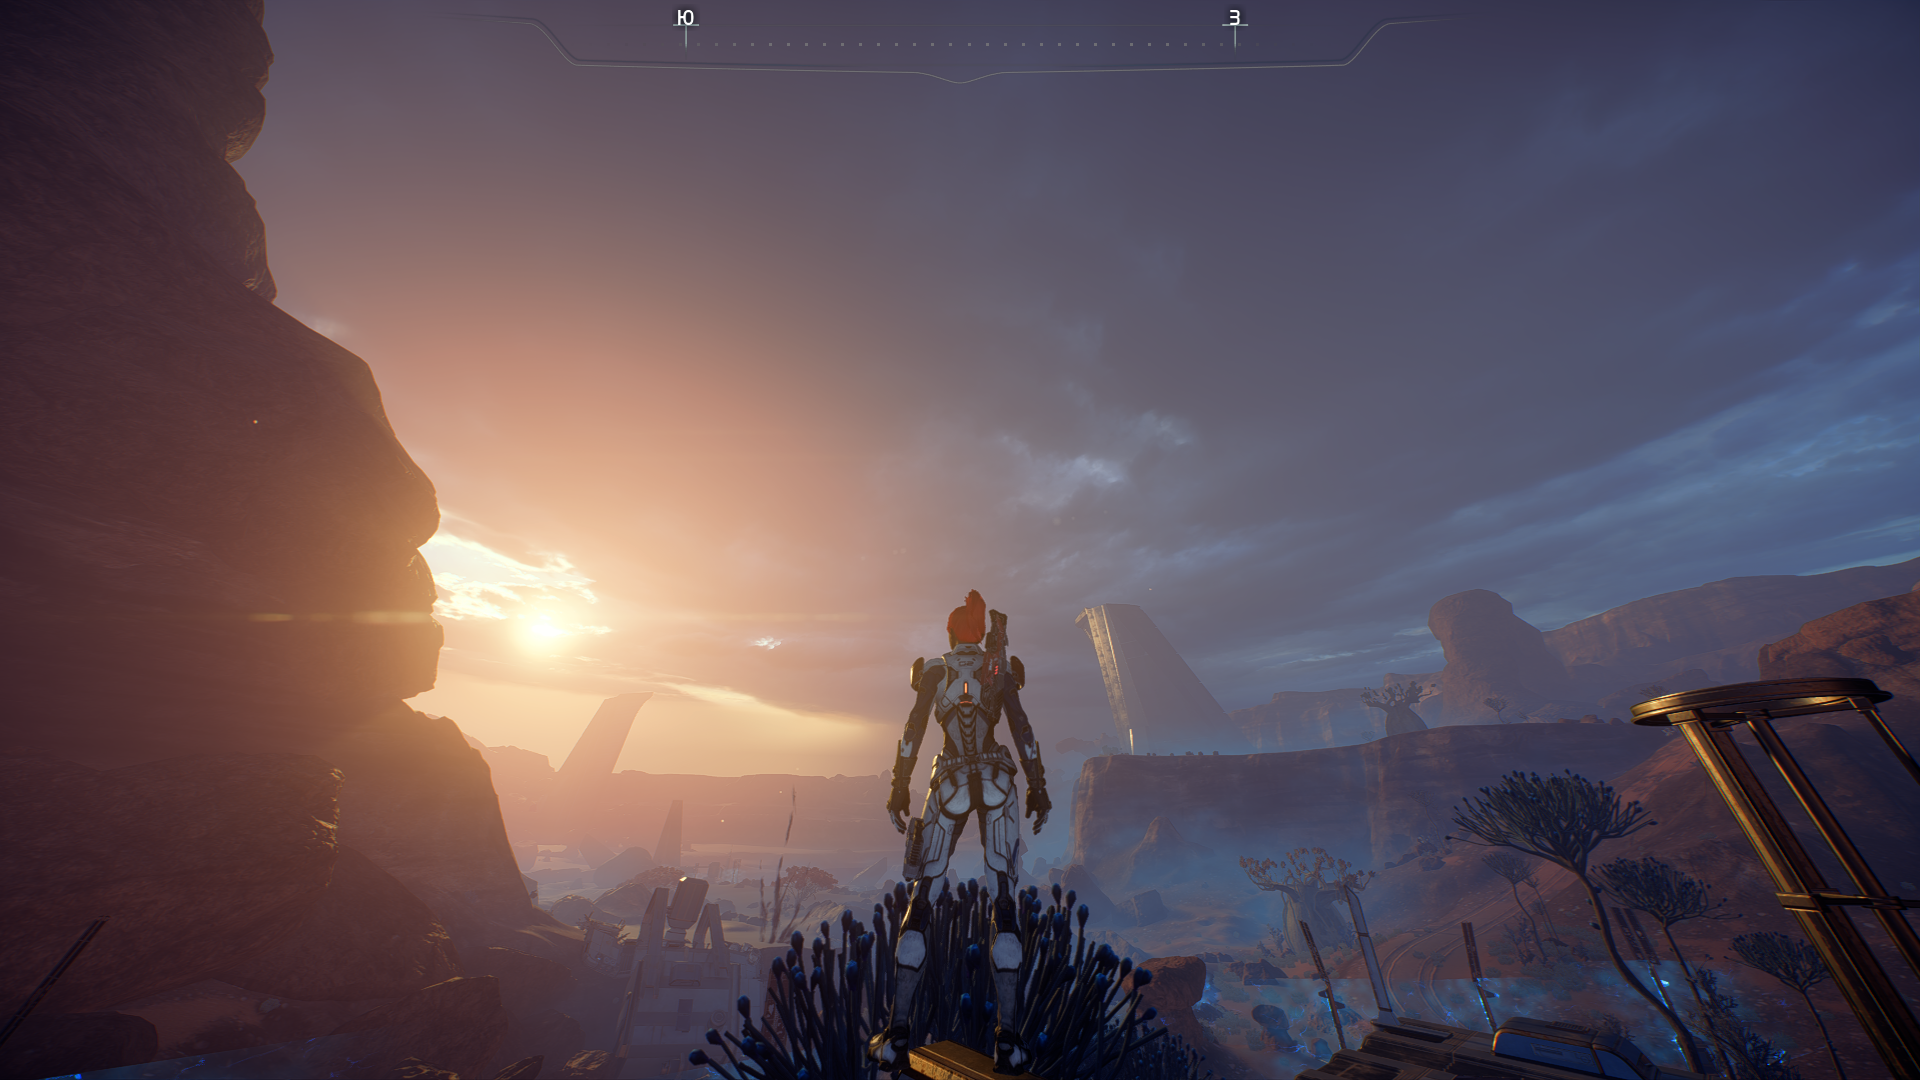 Mass Effect Andromeda 04.09.2017 - 15.40.32.05.png - Mass Effect: Andromeda